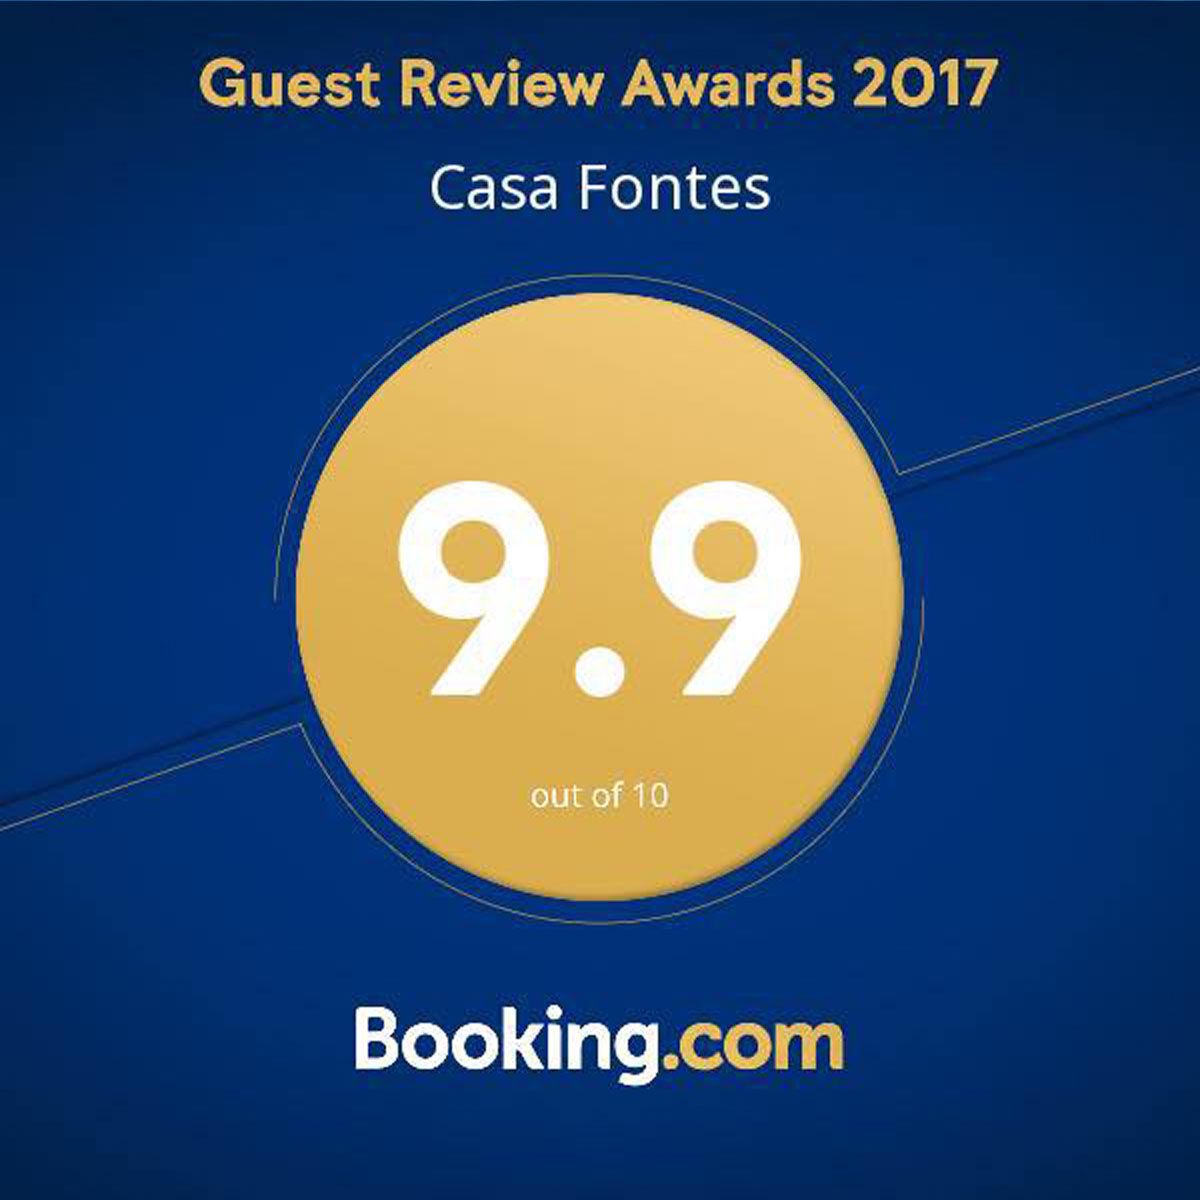 Casa Fontes on Booking.com